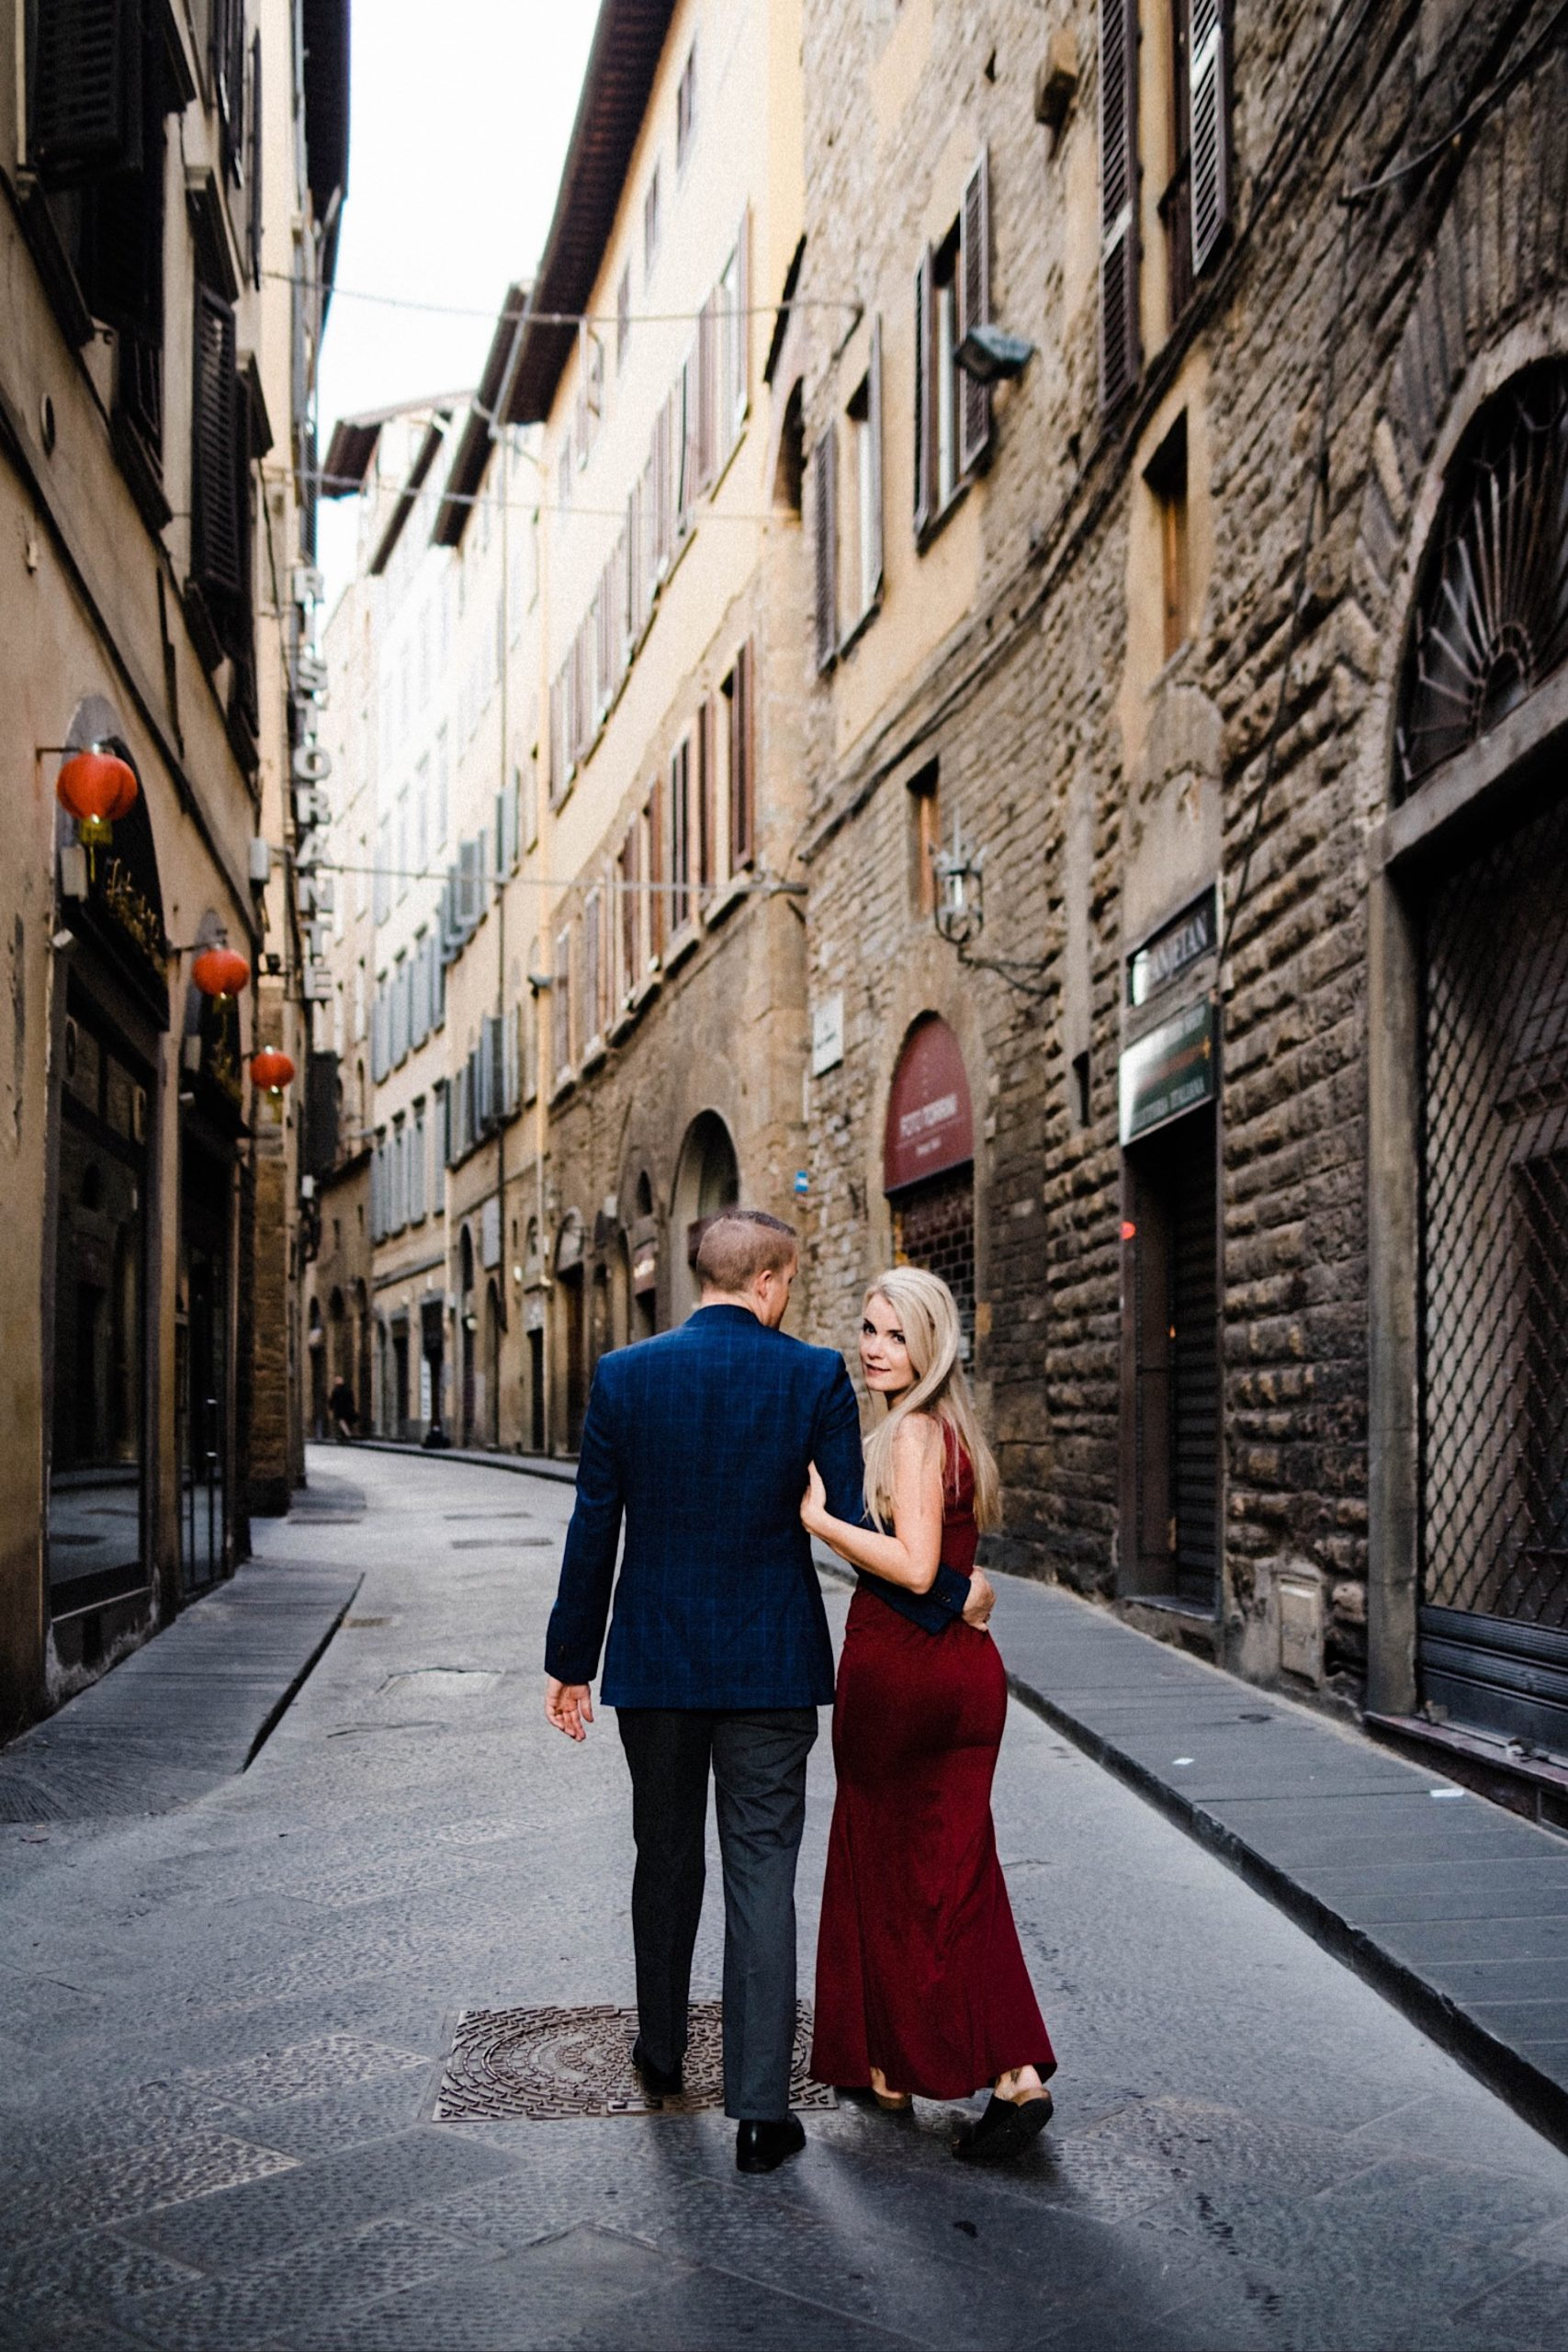 A wide, portrait photo of a couple walking down a curved laneway in Florence. He looks at her, and has his back to the camera, and she looks back at the camera.